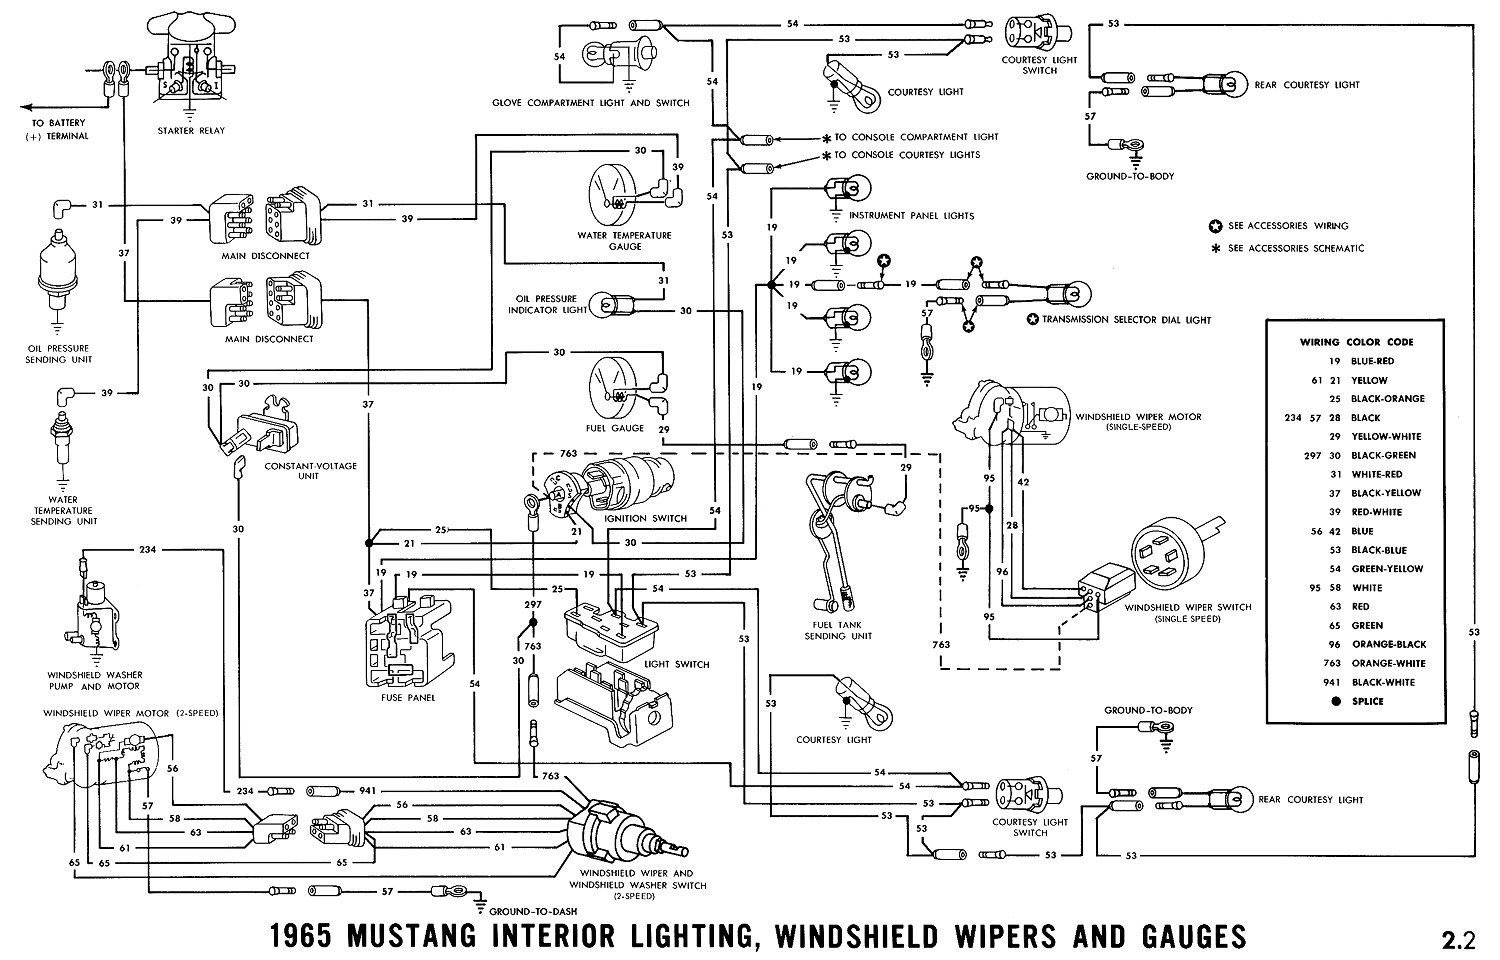 1965 mustang wiring diagrams average joe restoration65 Mustang Fuse Block Wiring Diagrams #2